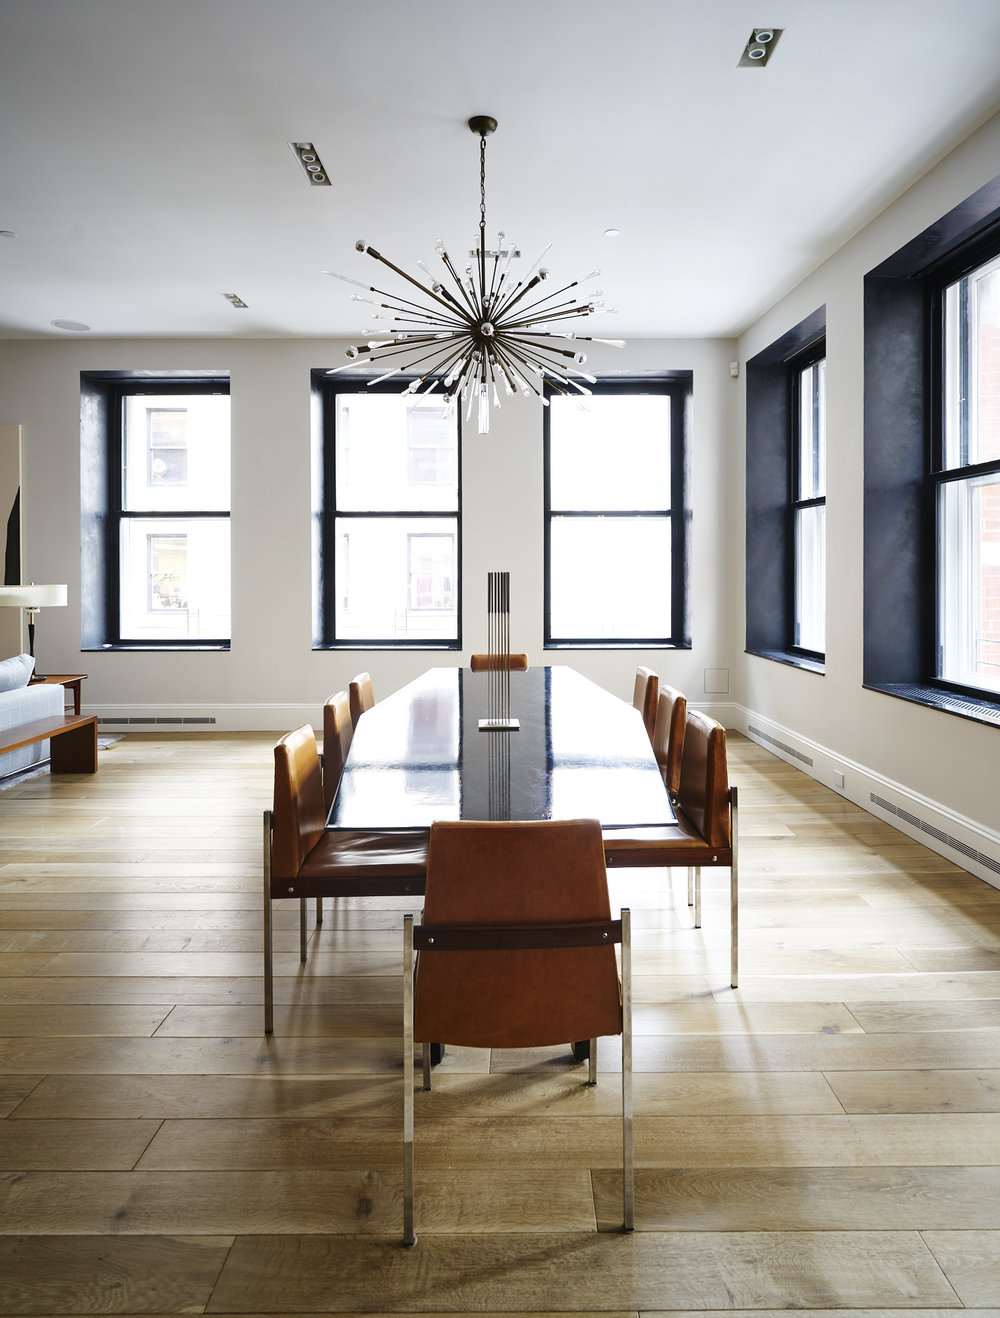 Modern Soho loft dining room interior with chandelier